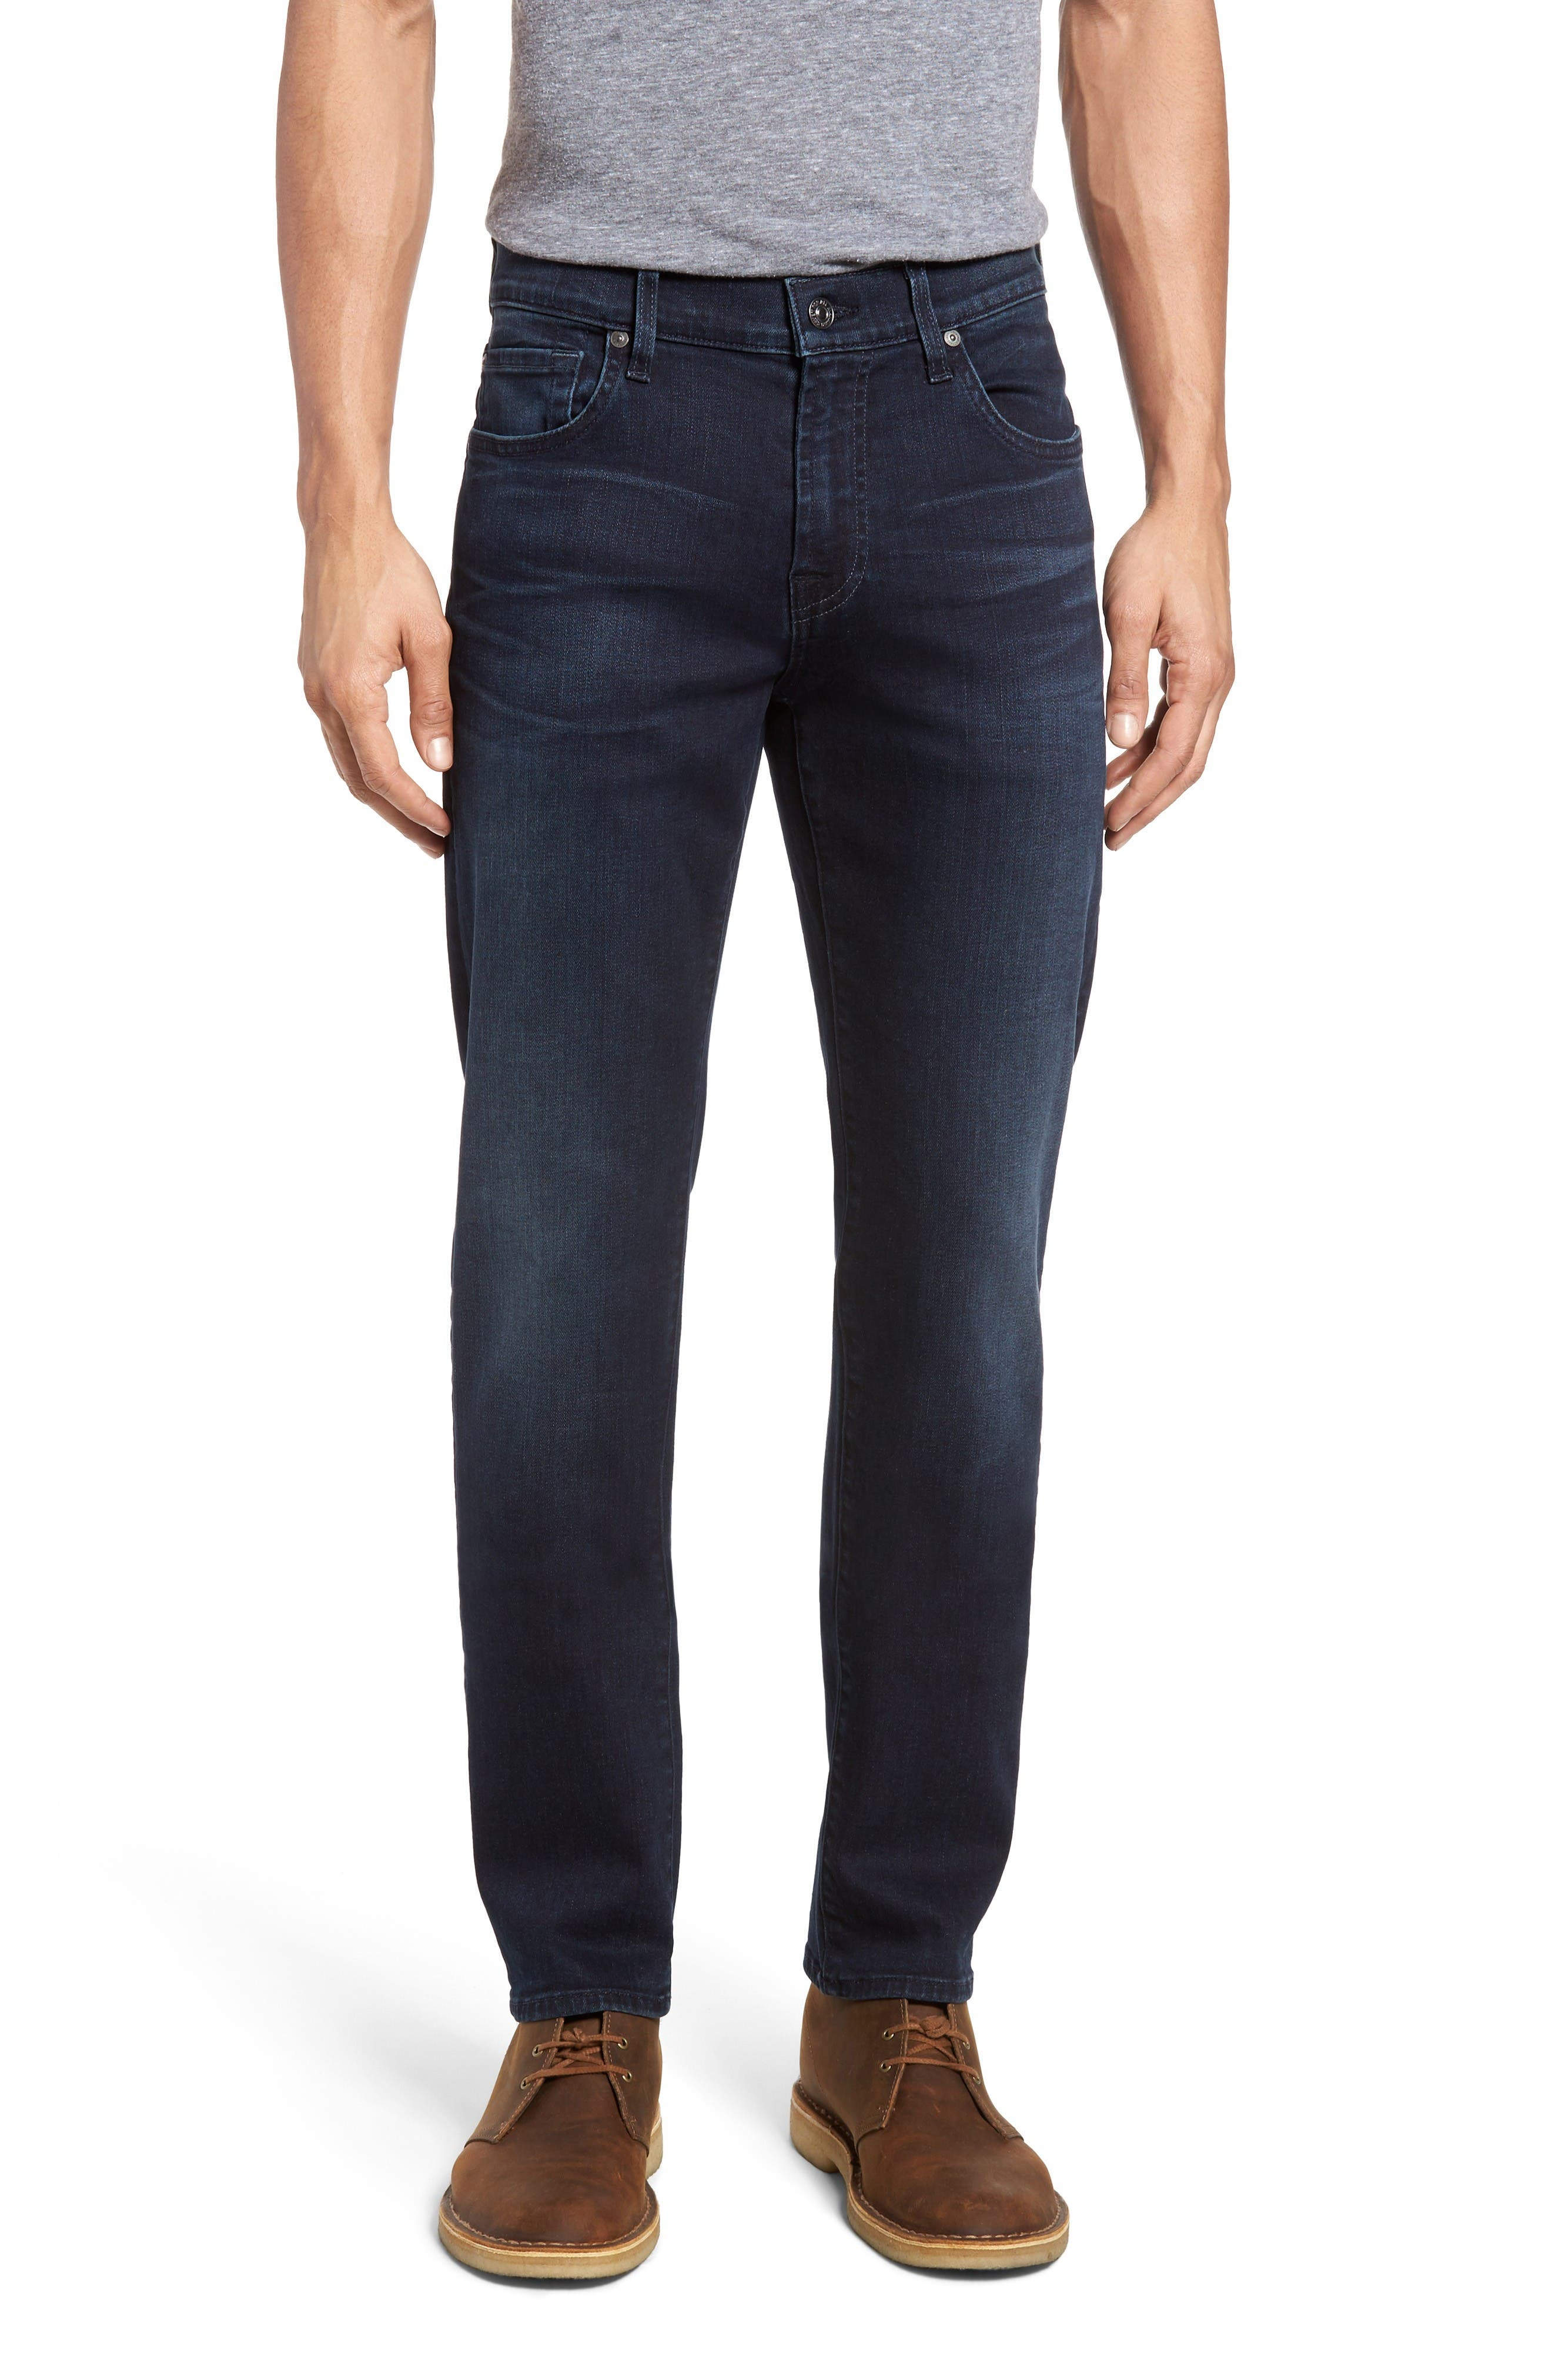 Alternate Image 1 Selected - 7 For All Mankind® Slimmy Luxe Performance Slim Fit Jeans (Tidal Wave)